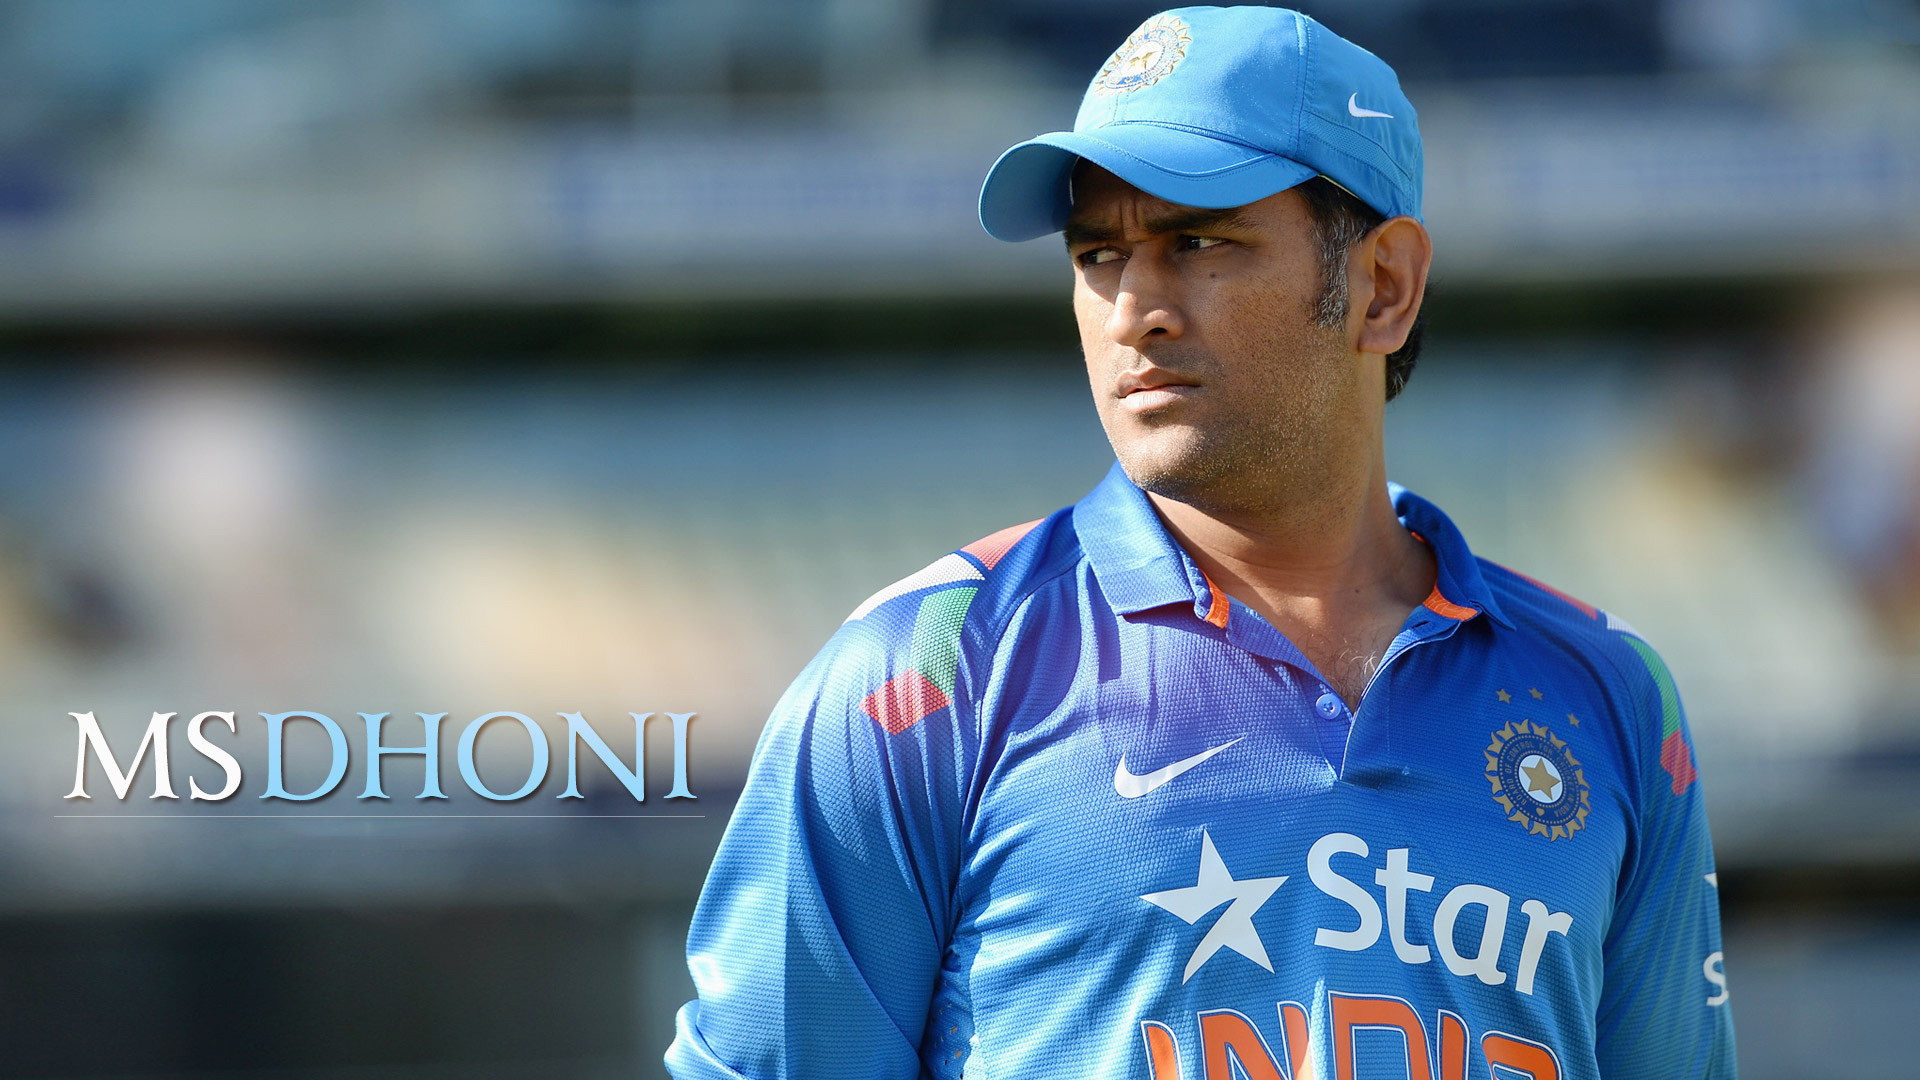 Ms Dhoni Indian Cricketer High Definition Wallpaper Indian Cricket Team Dhoni 1920x1080 Wallpaper Teahub Io